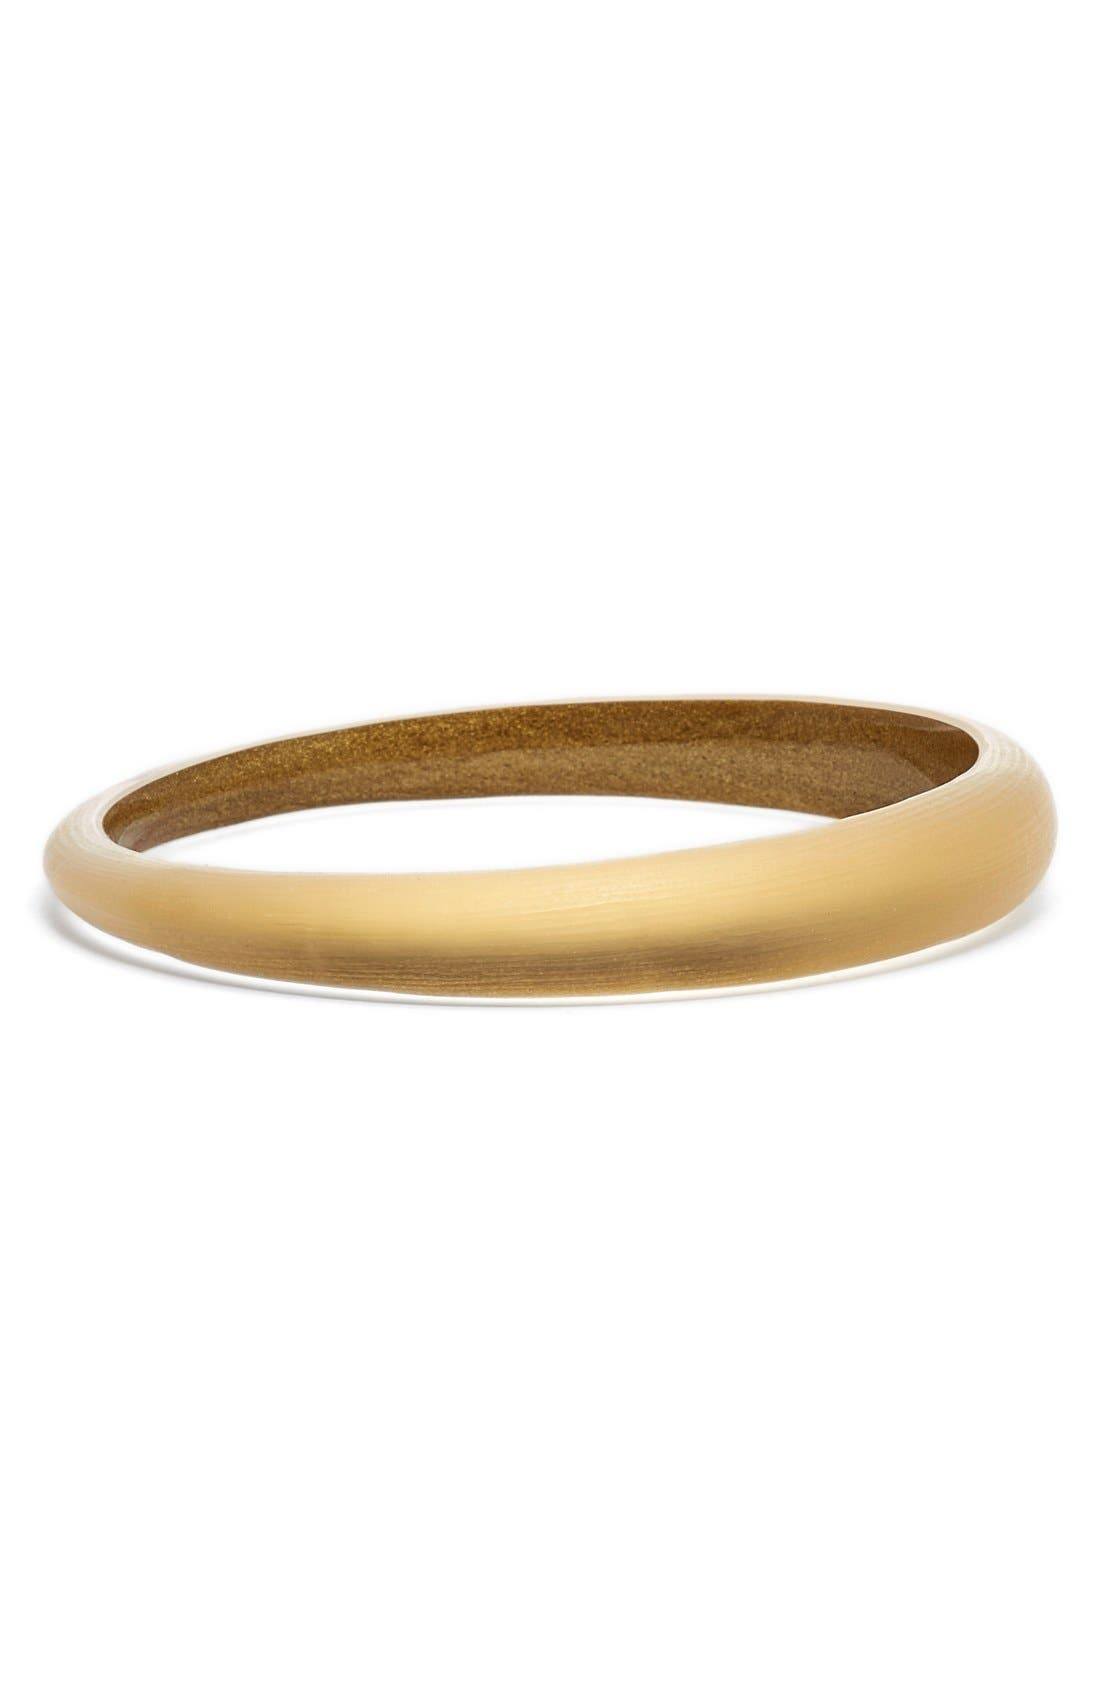 ALEXIS BITTAR 'LUCITE' SKINNY TAPERED BANGLE